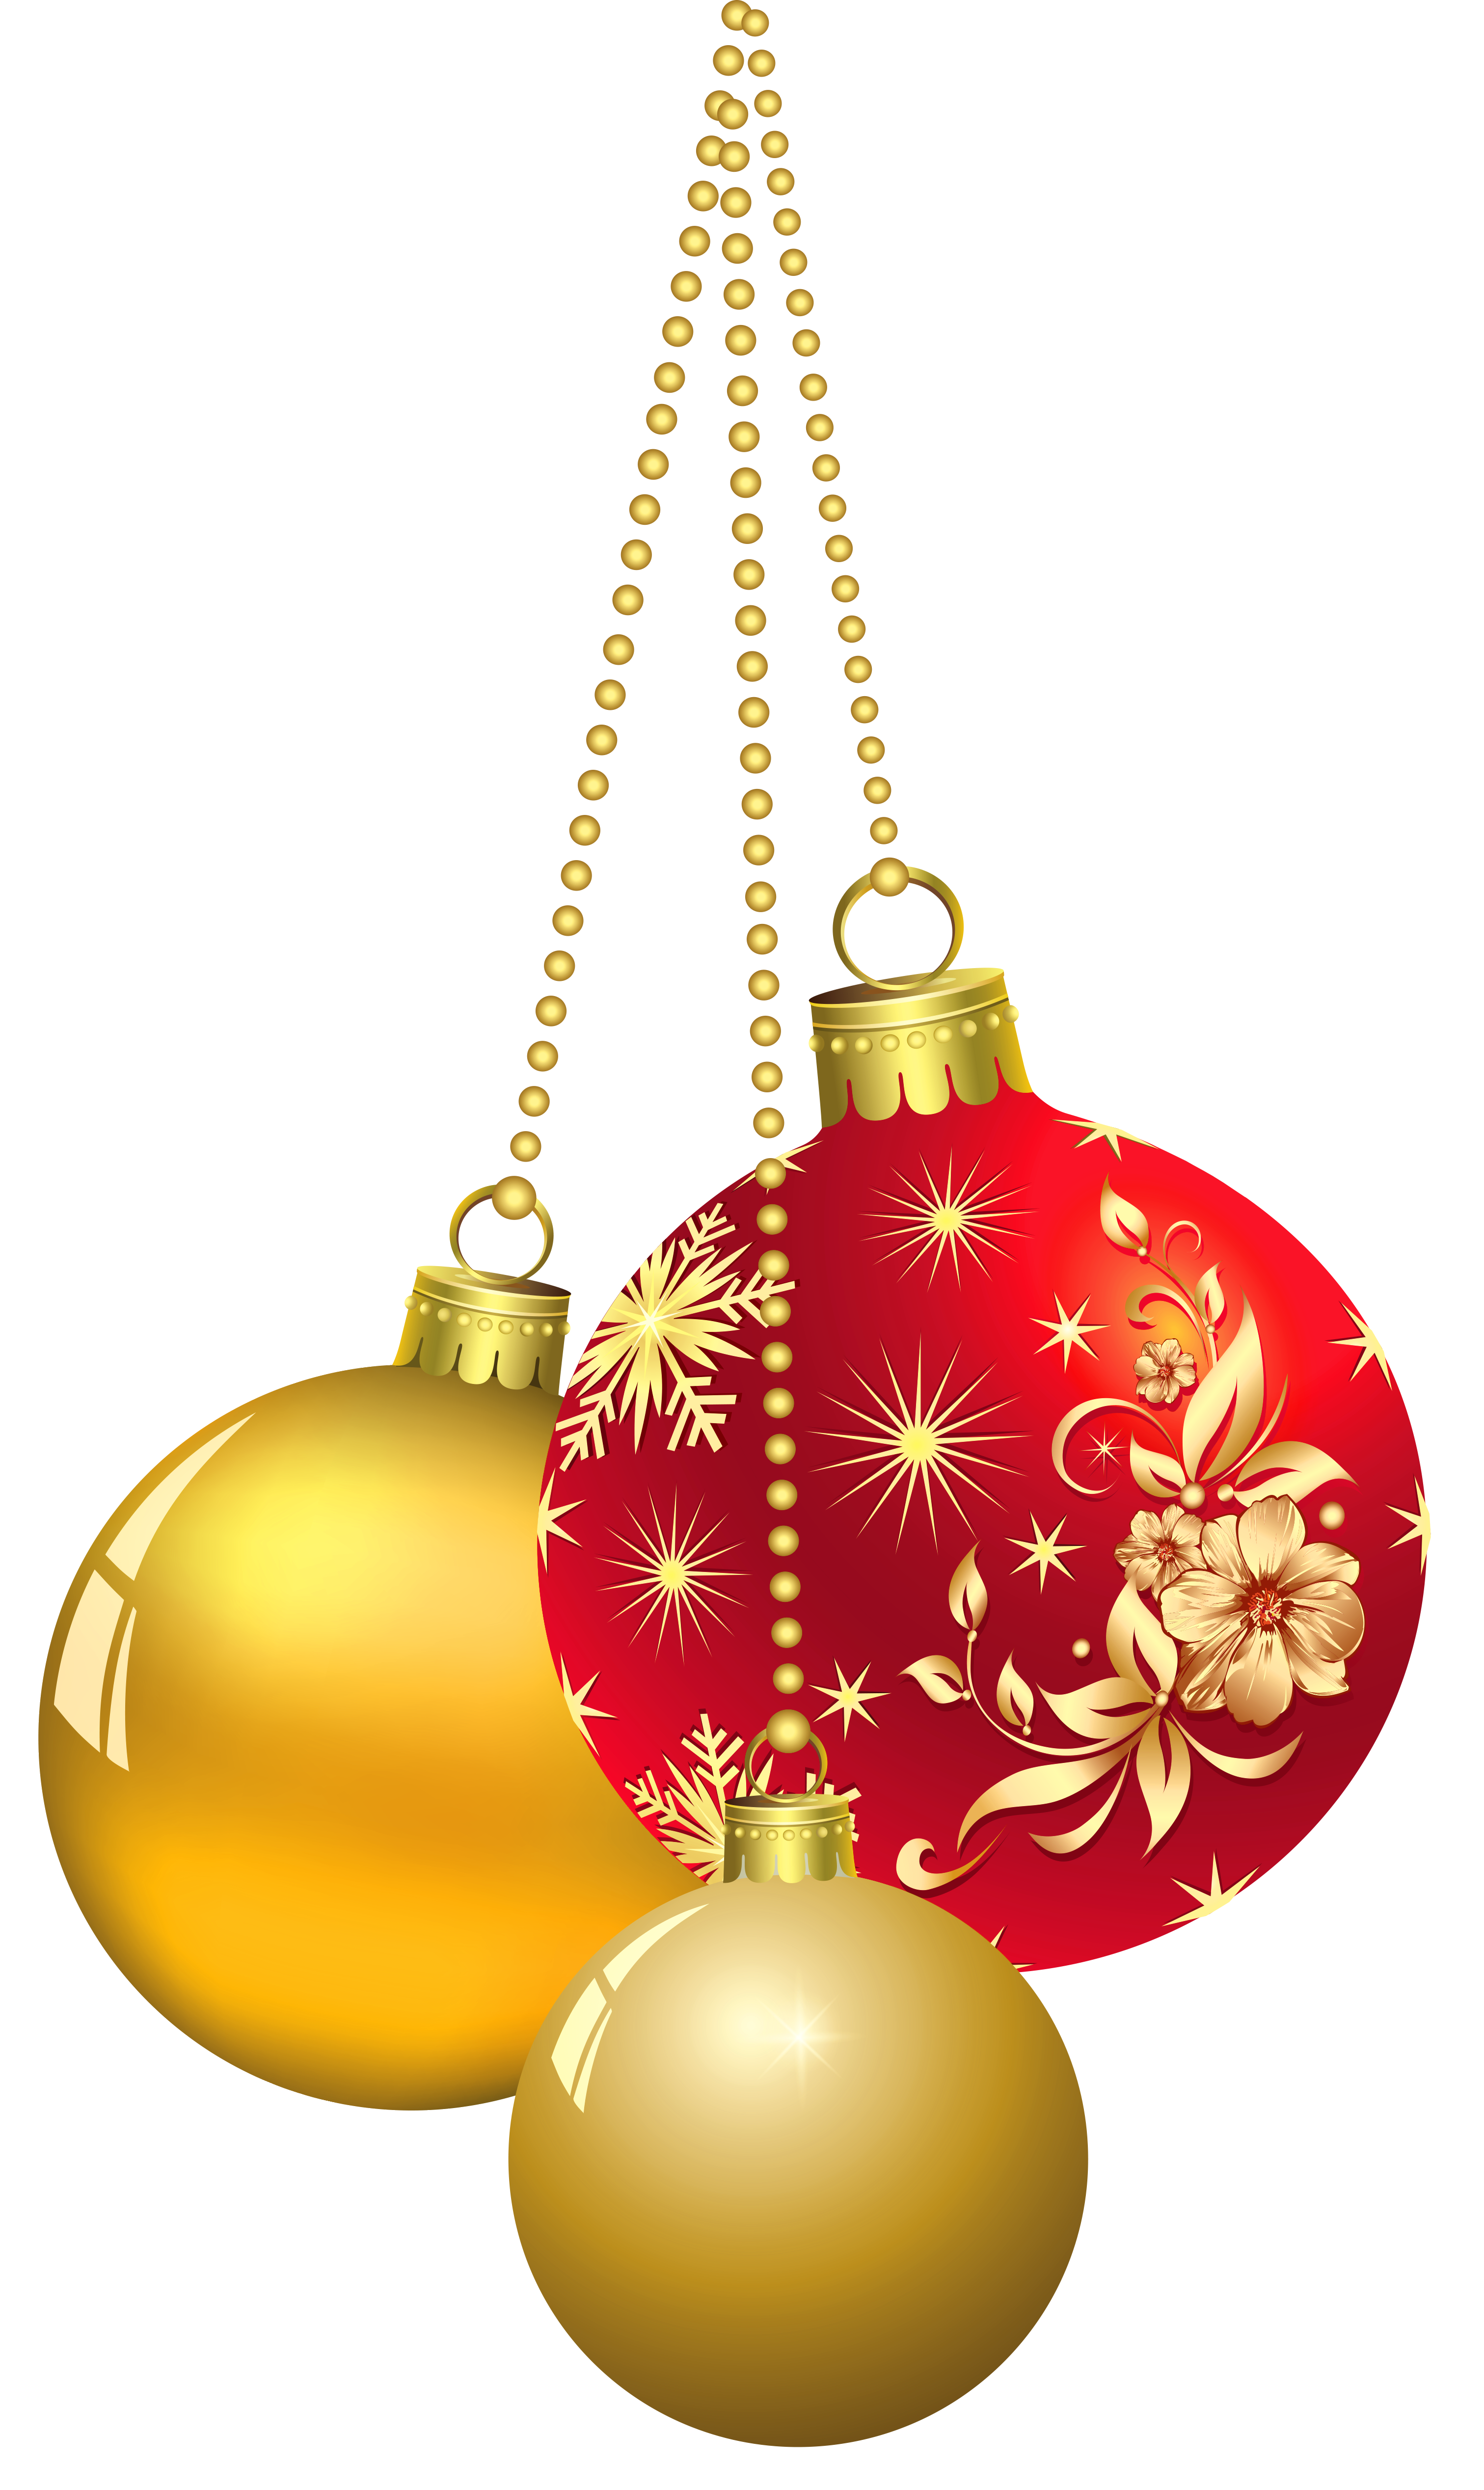 Gold christmas ornament clipart clip art stock Transparent Christmas Ornaments PNG Clipart | Gallery Yopriceville ... clip art stock